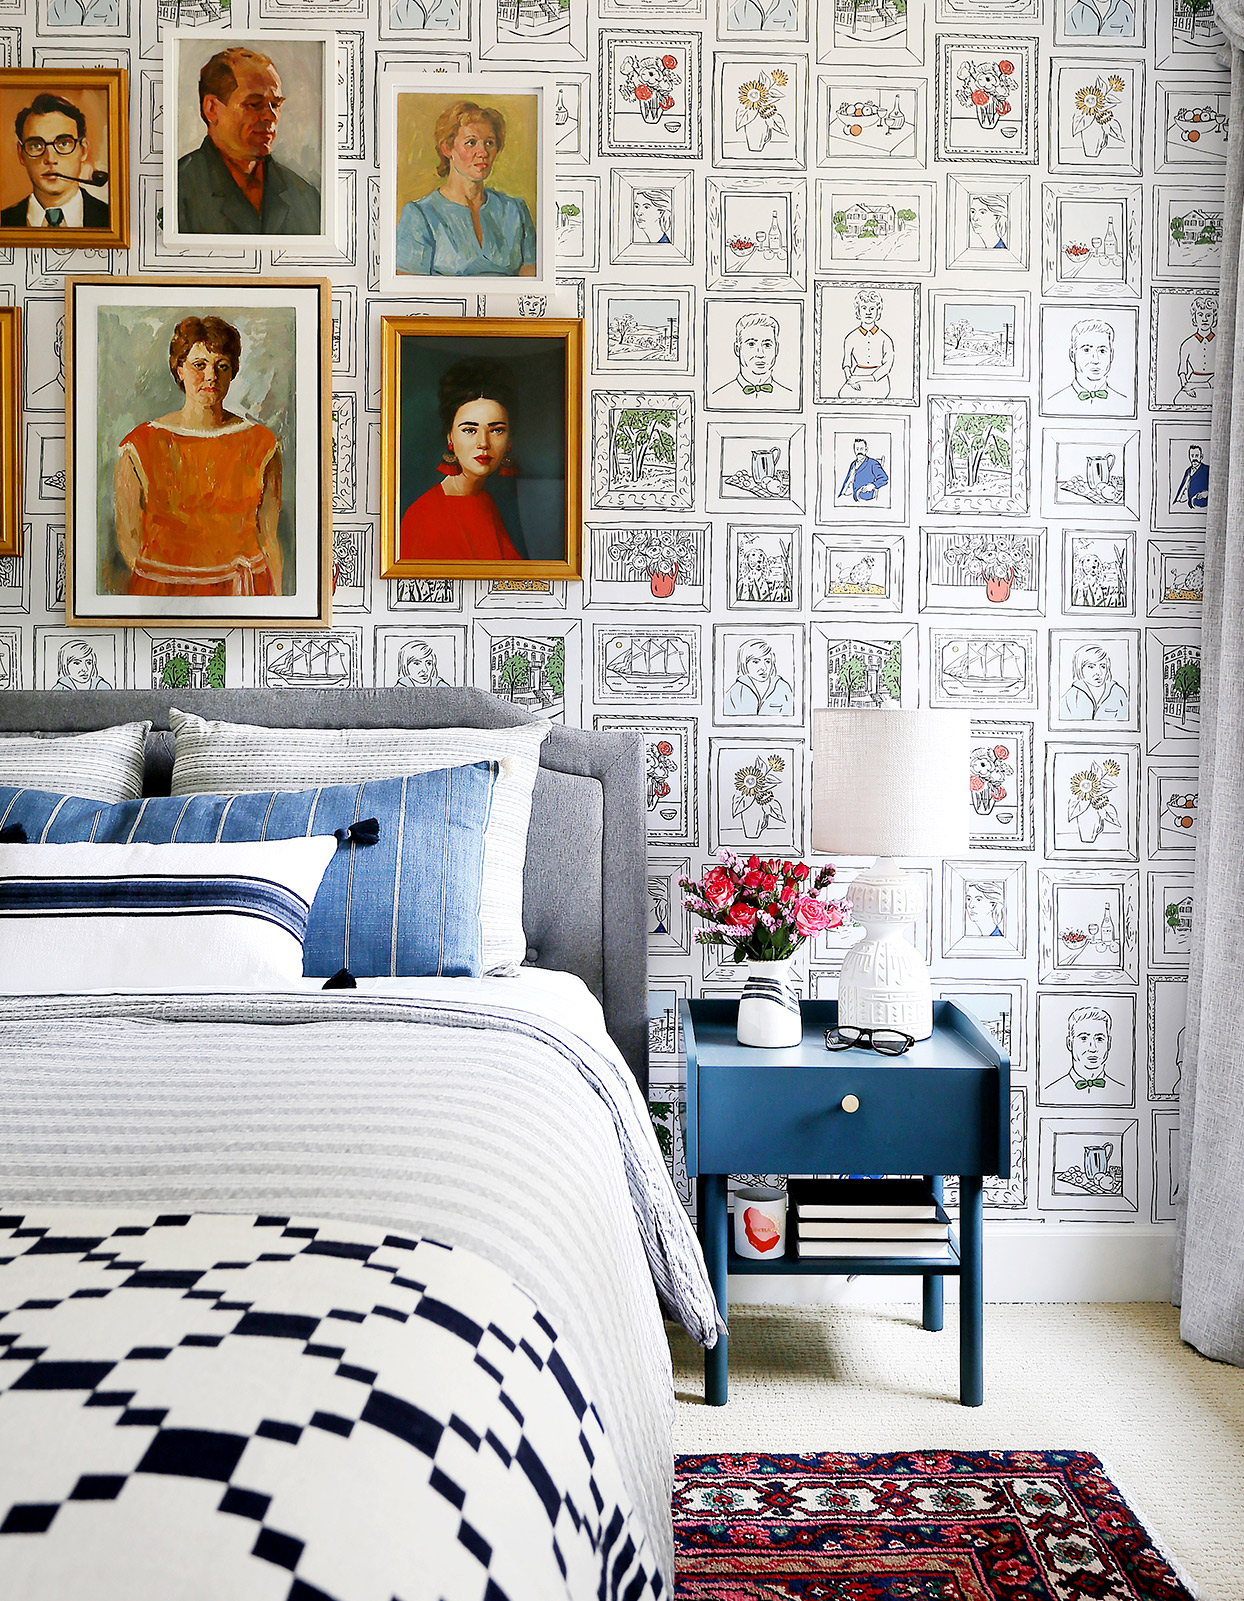 Bedroom with illustrated wallpaper